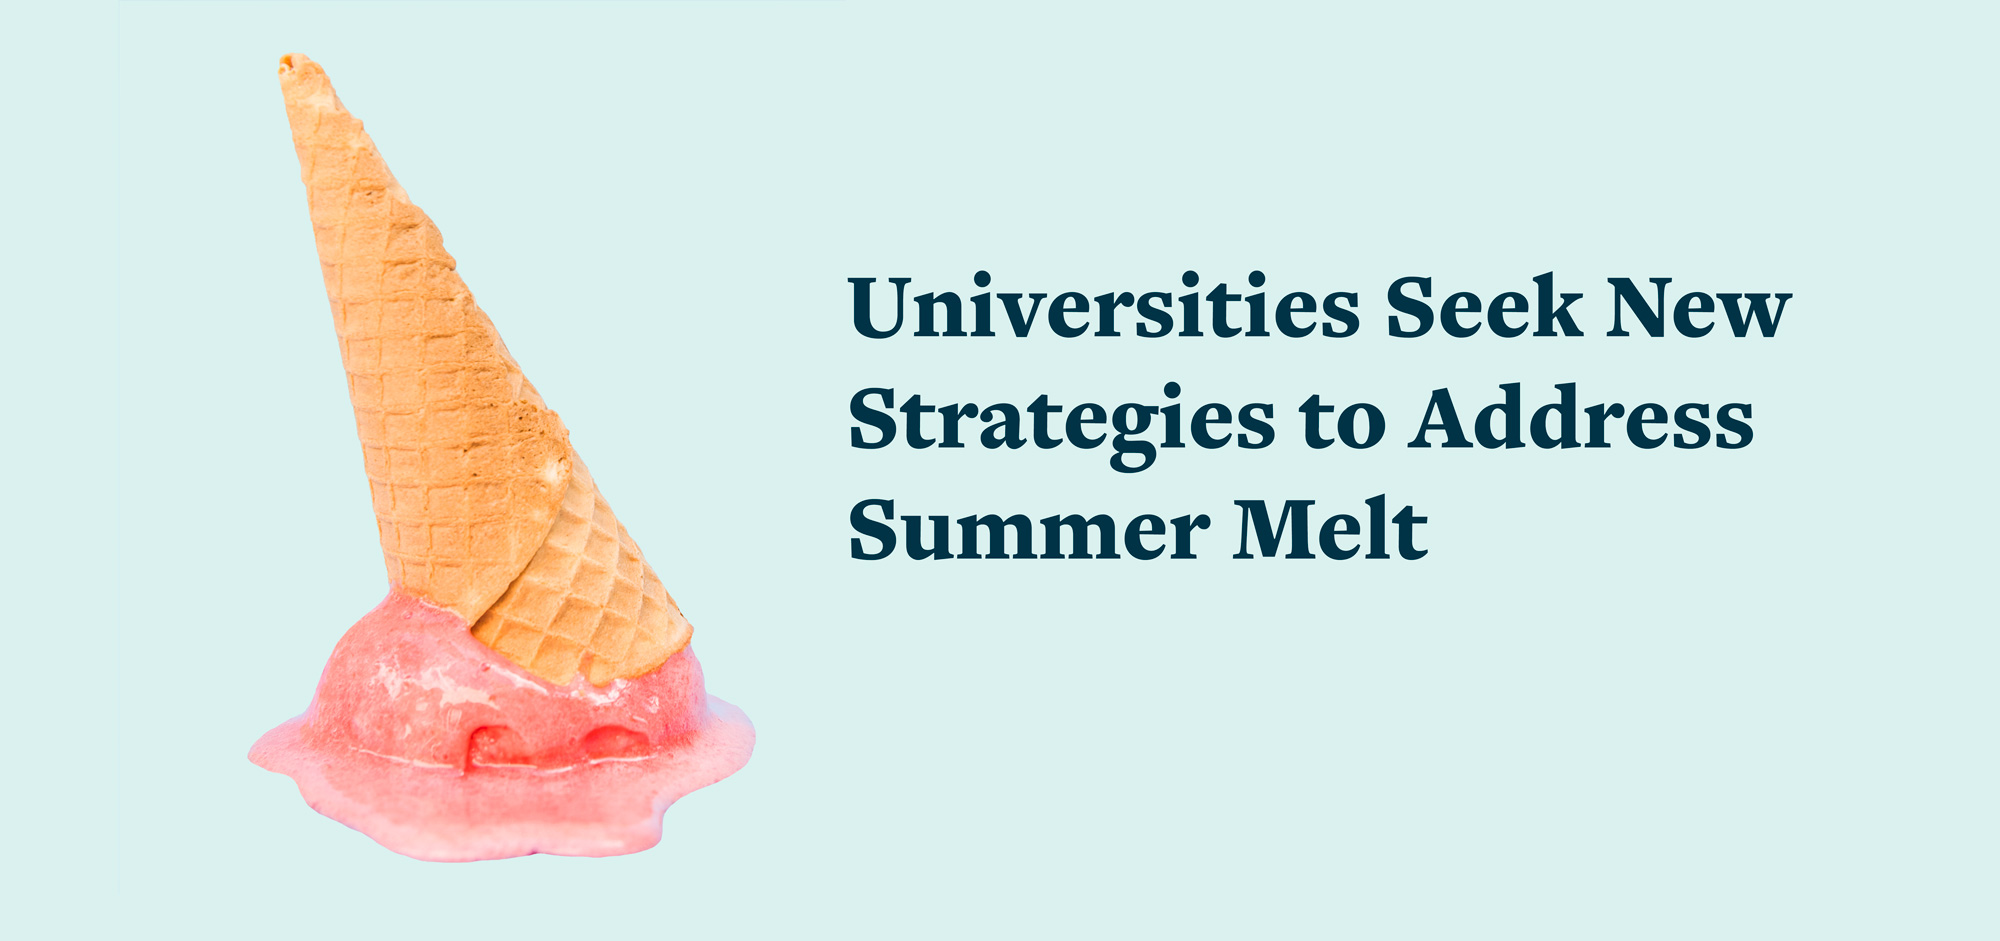 Universities Seek New Strategies to Address Summer Melt